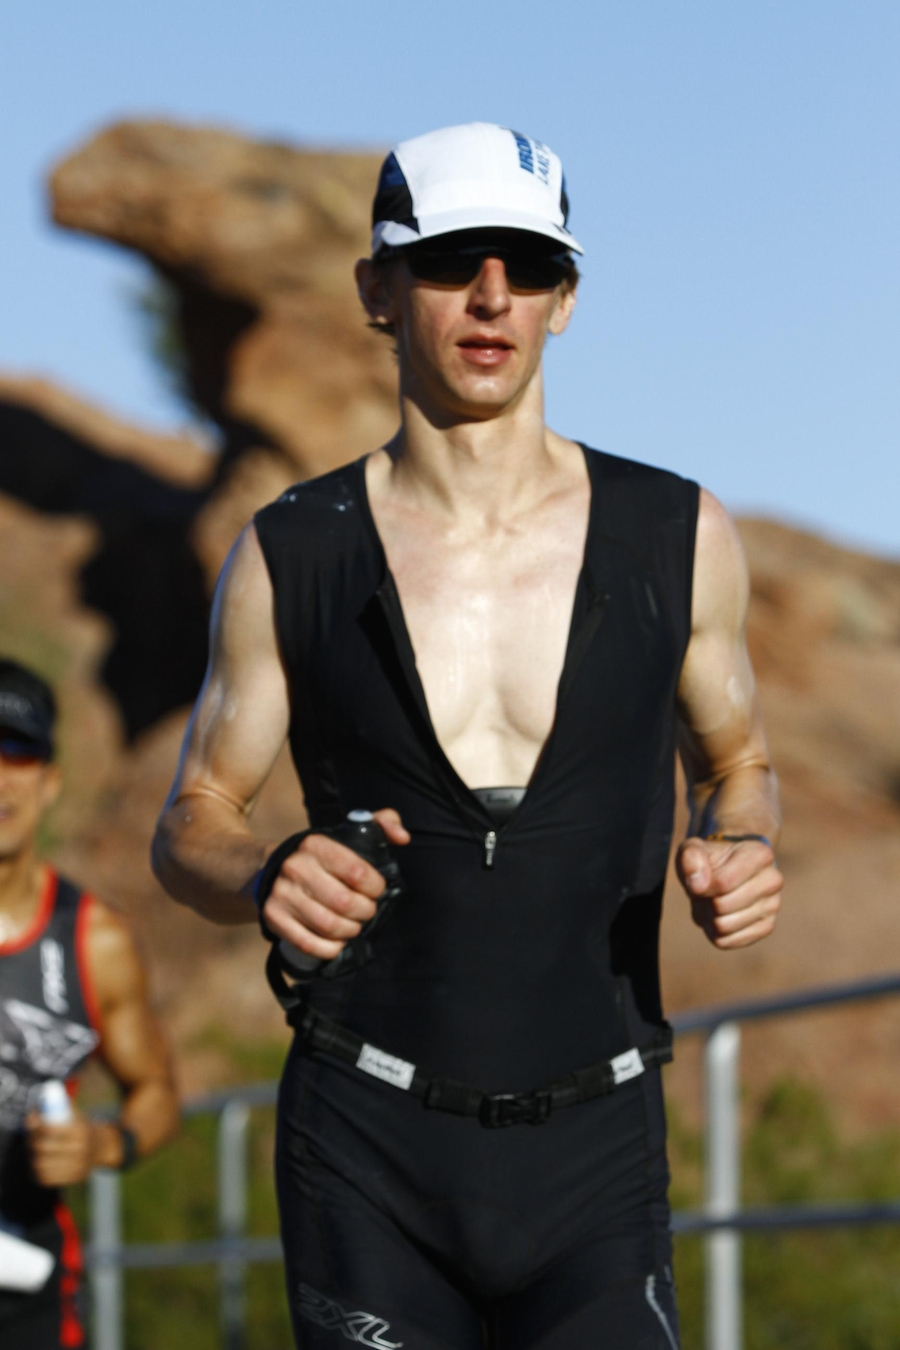 greg_kroleski_ironman_arizona_run_hill